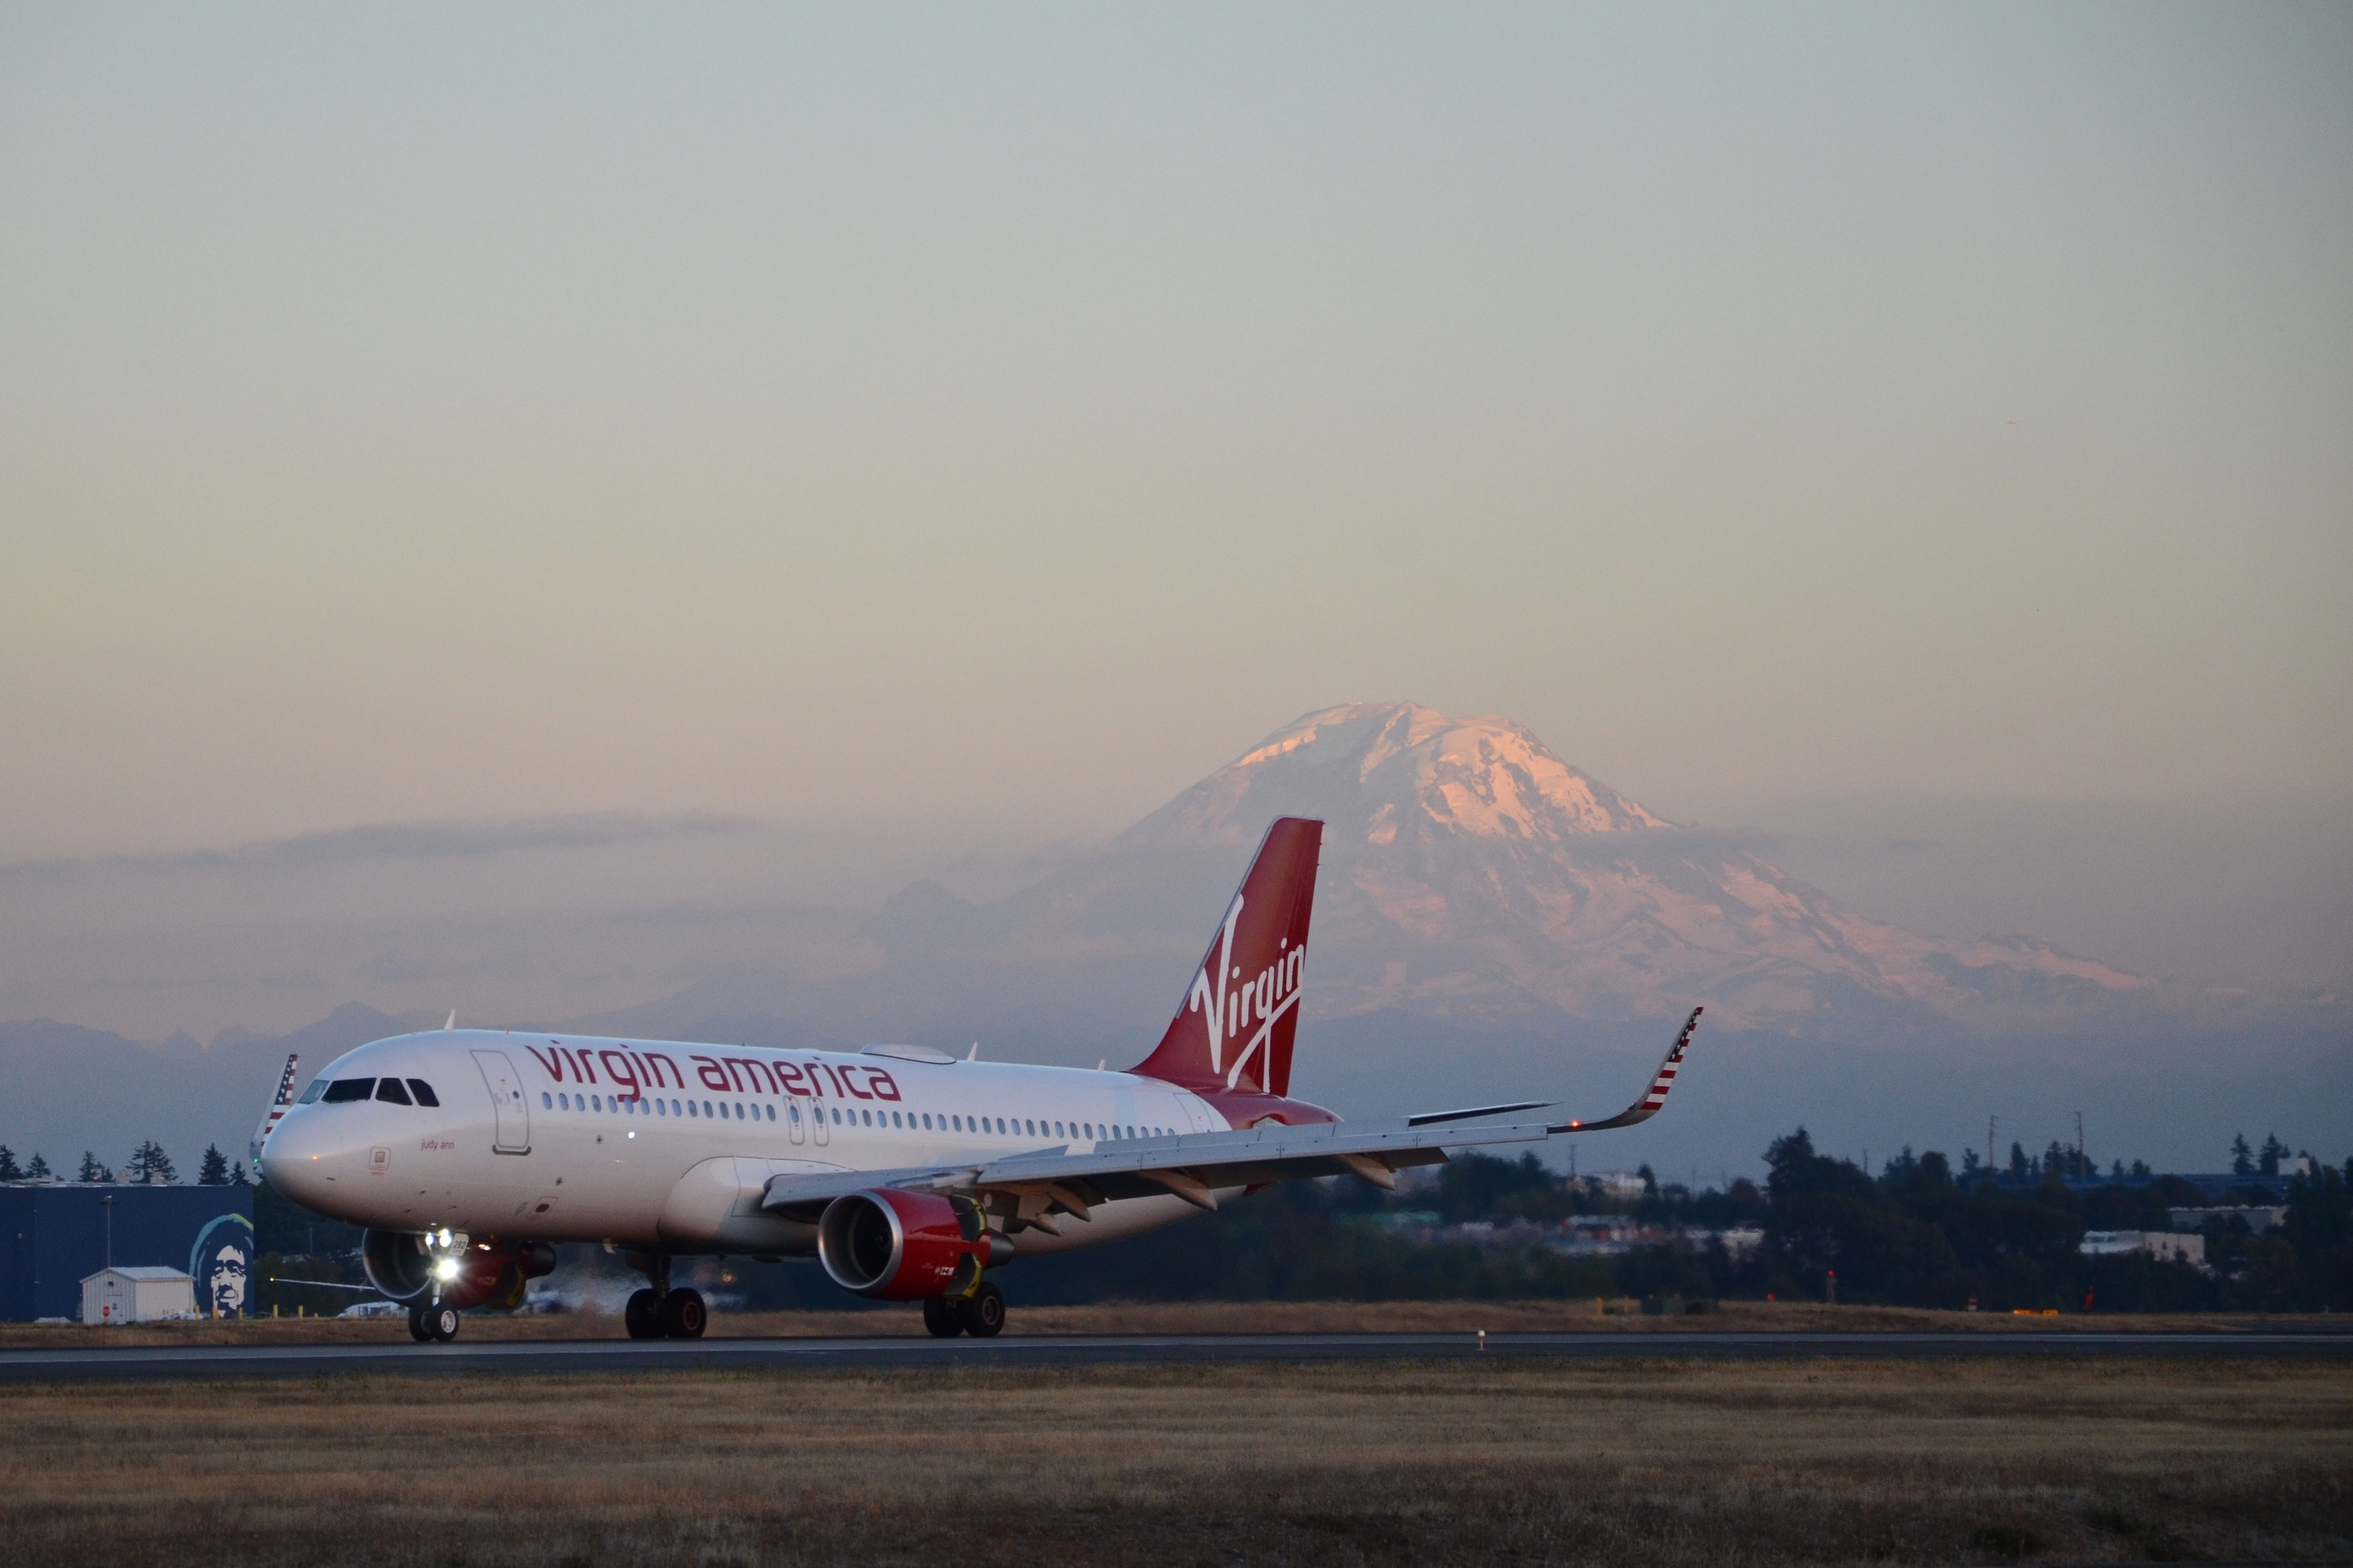 Washington state's Mt. Rainier in the background as a Virgin America Airbus A320 lands at Seattle-Tacoma International Airport in 2016.